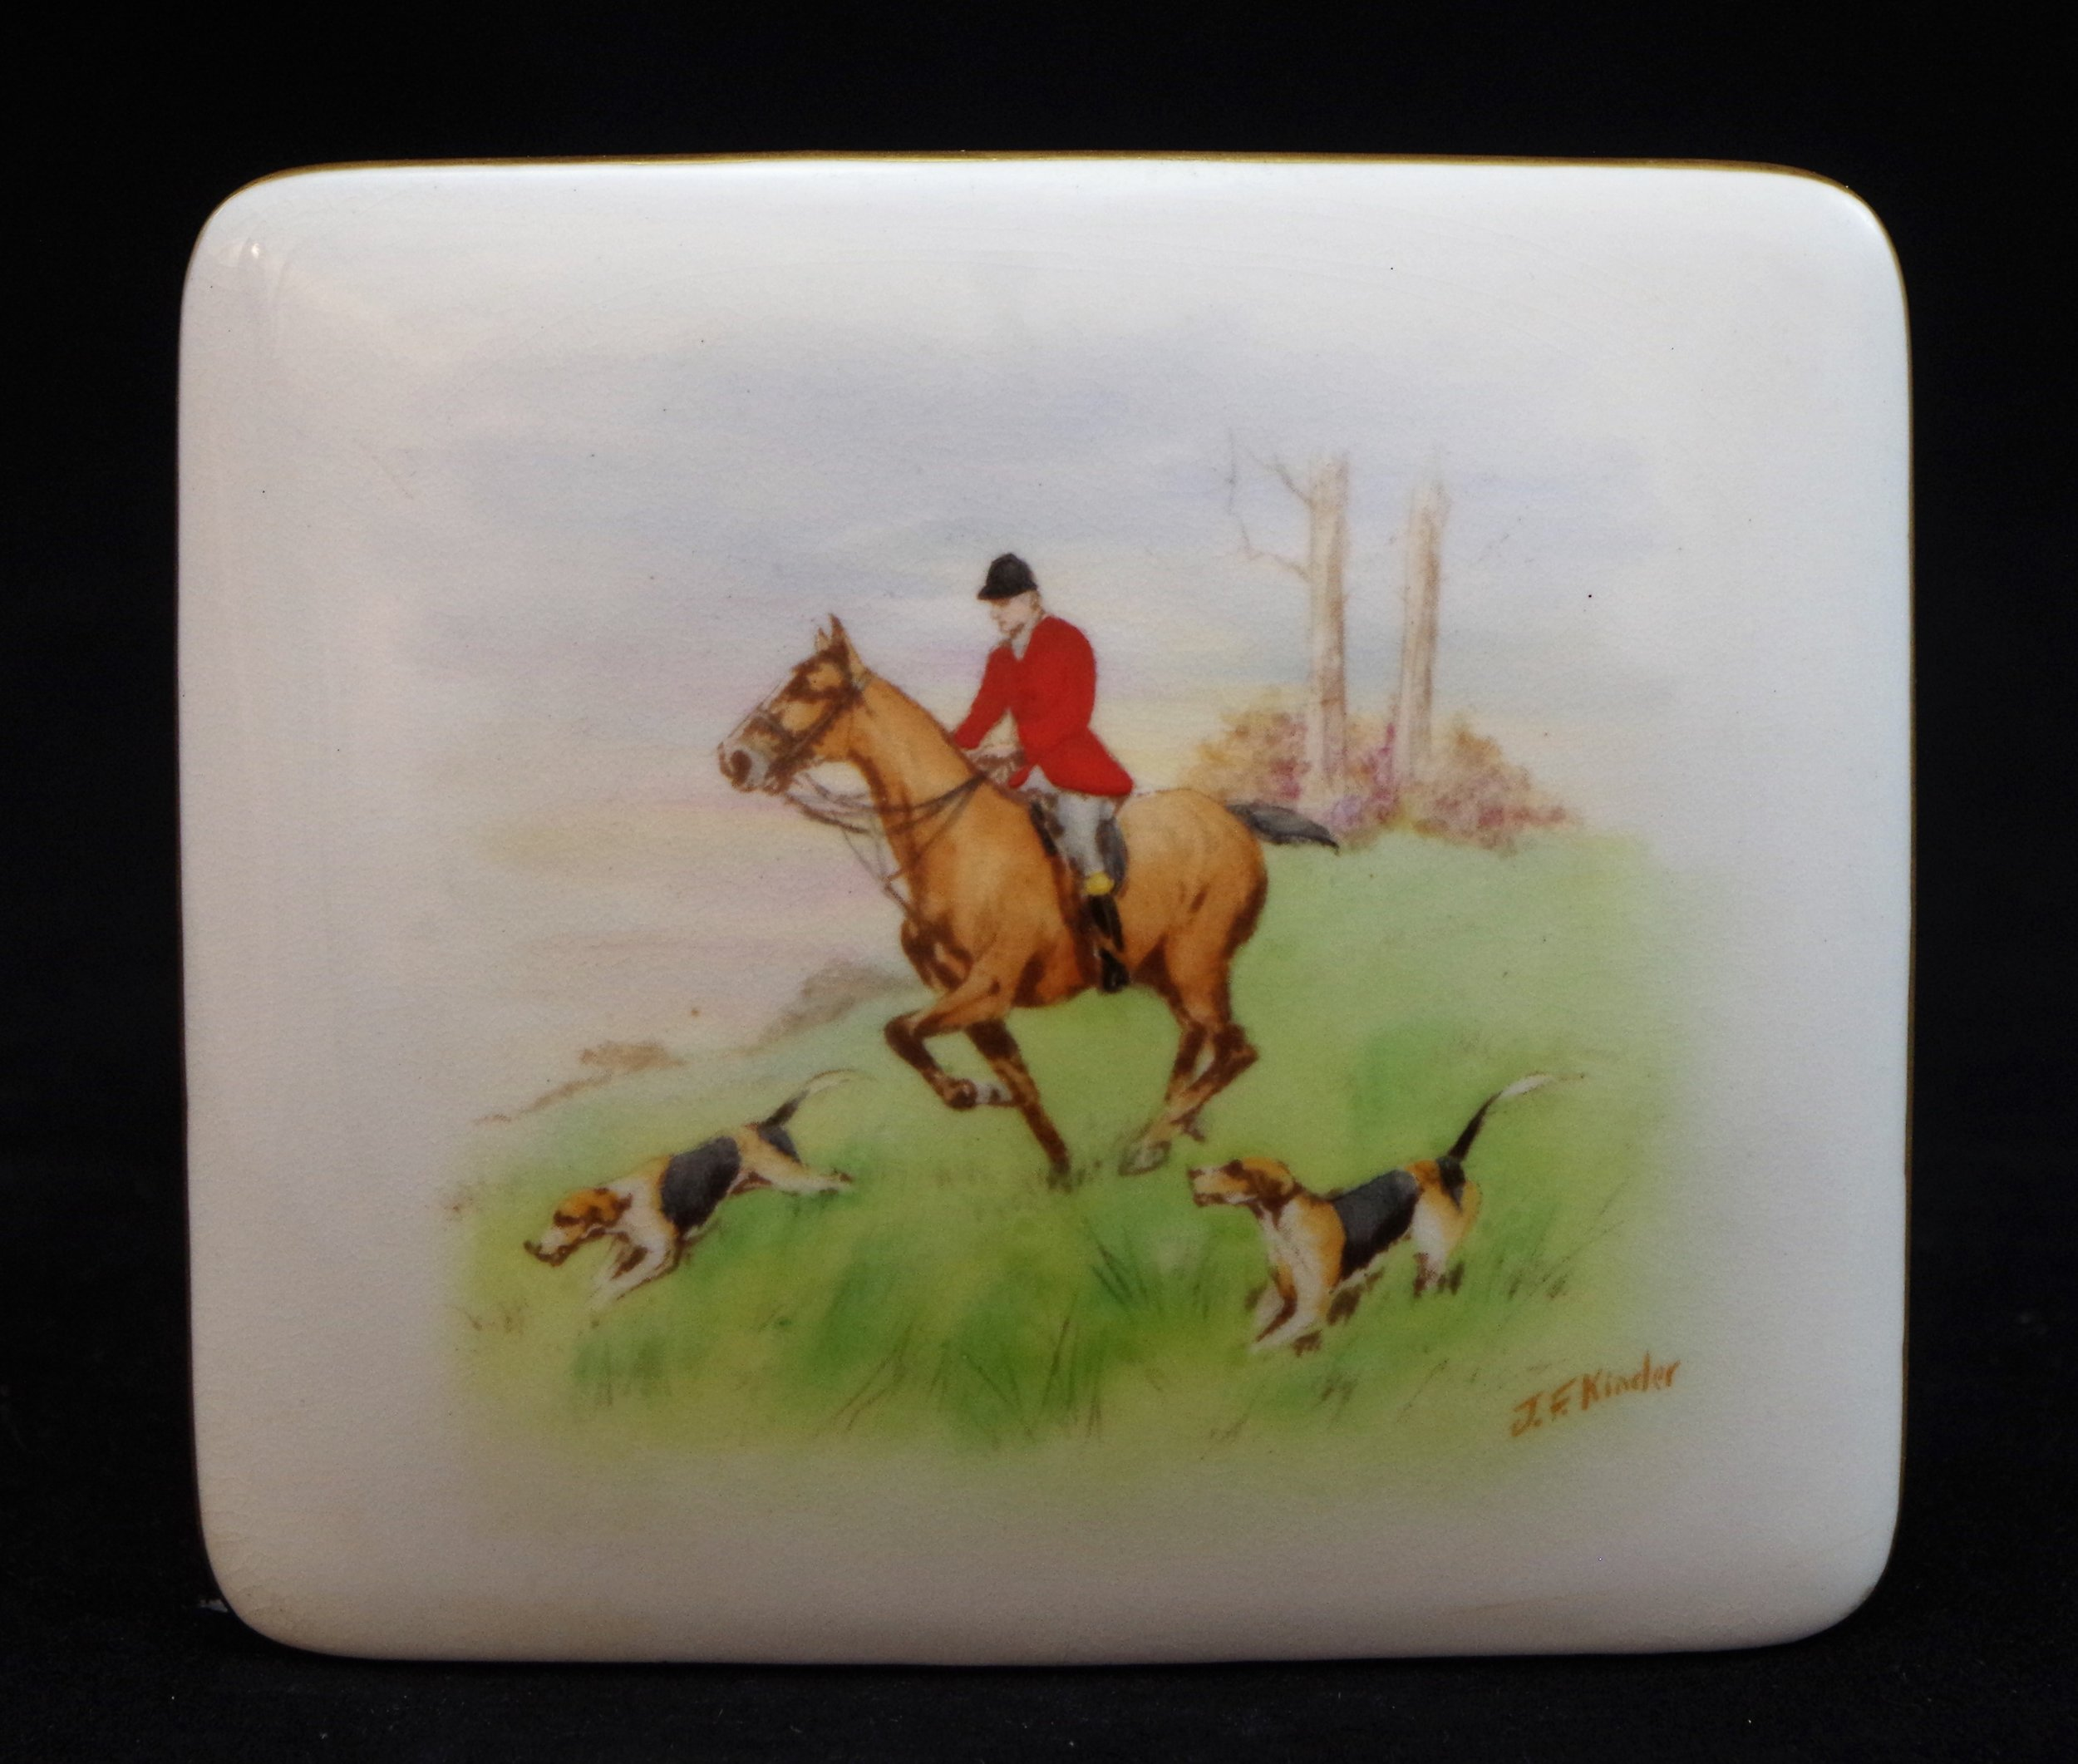 royal-crown-derby-oblong-cigarette-box-shape-1920-hunting-scene